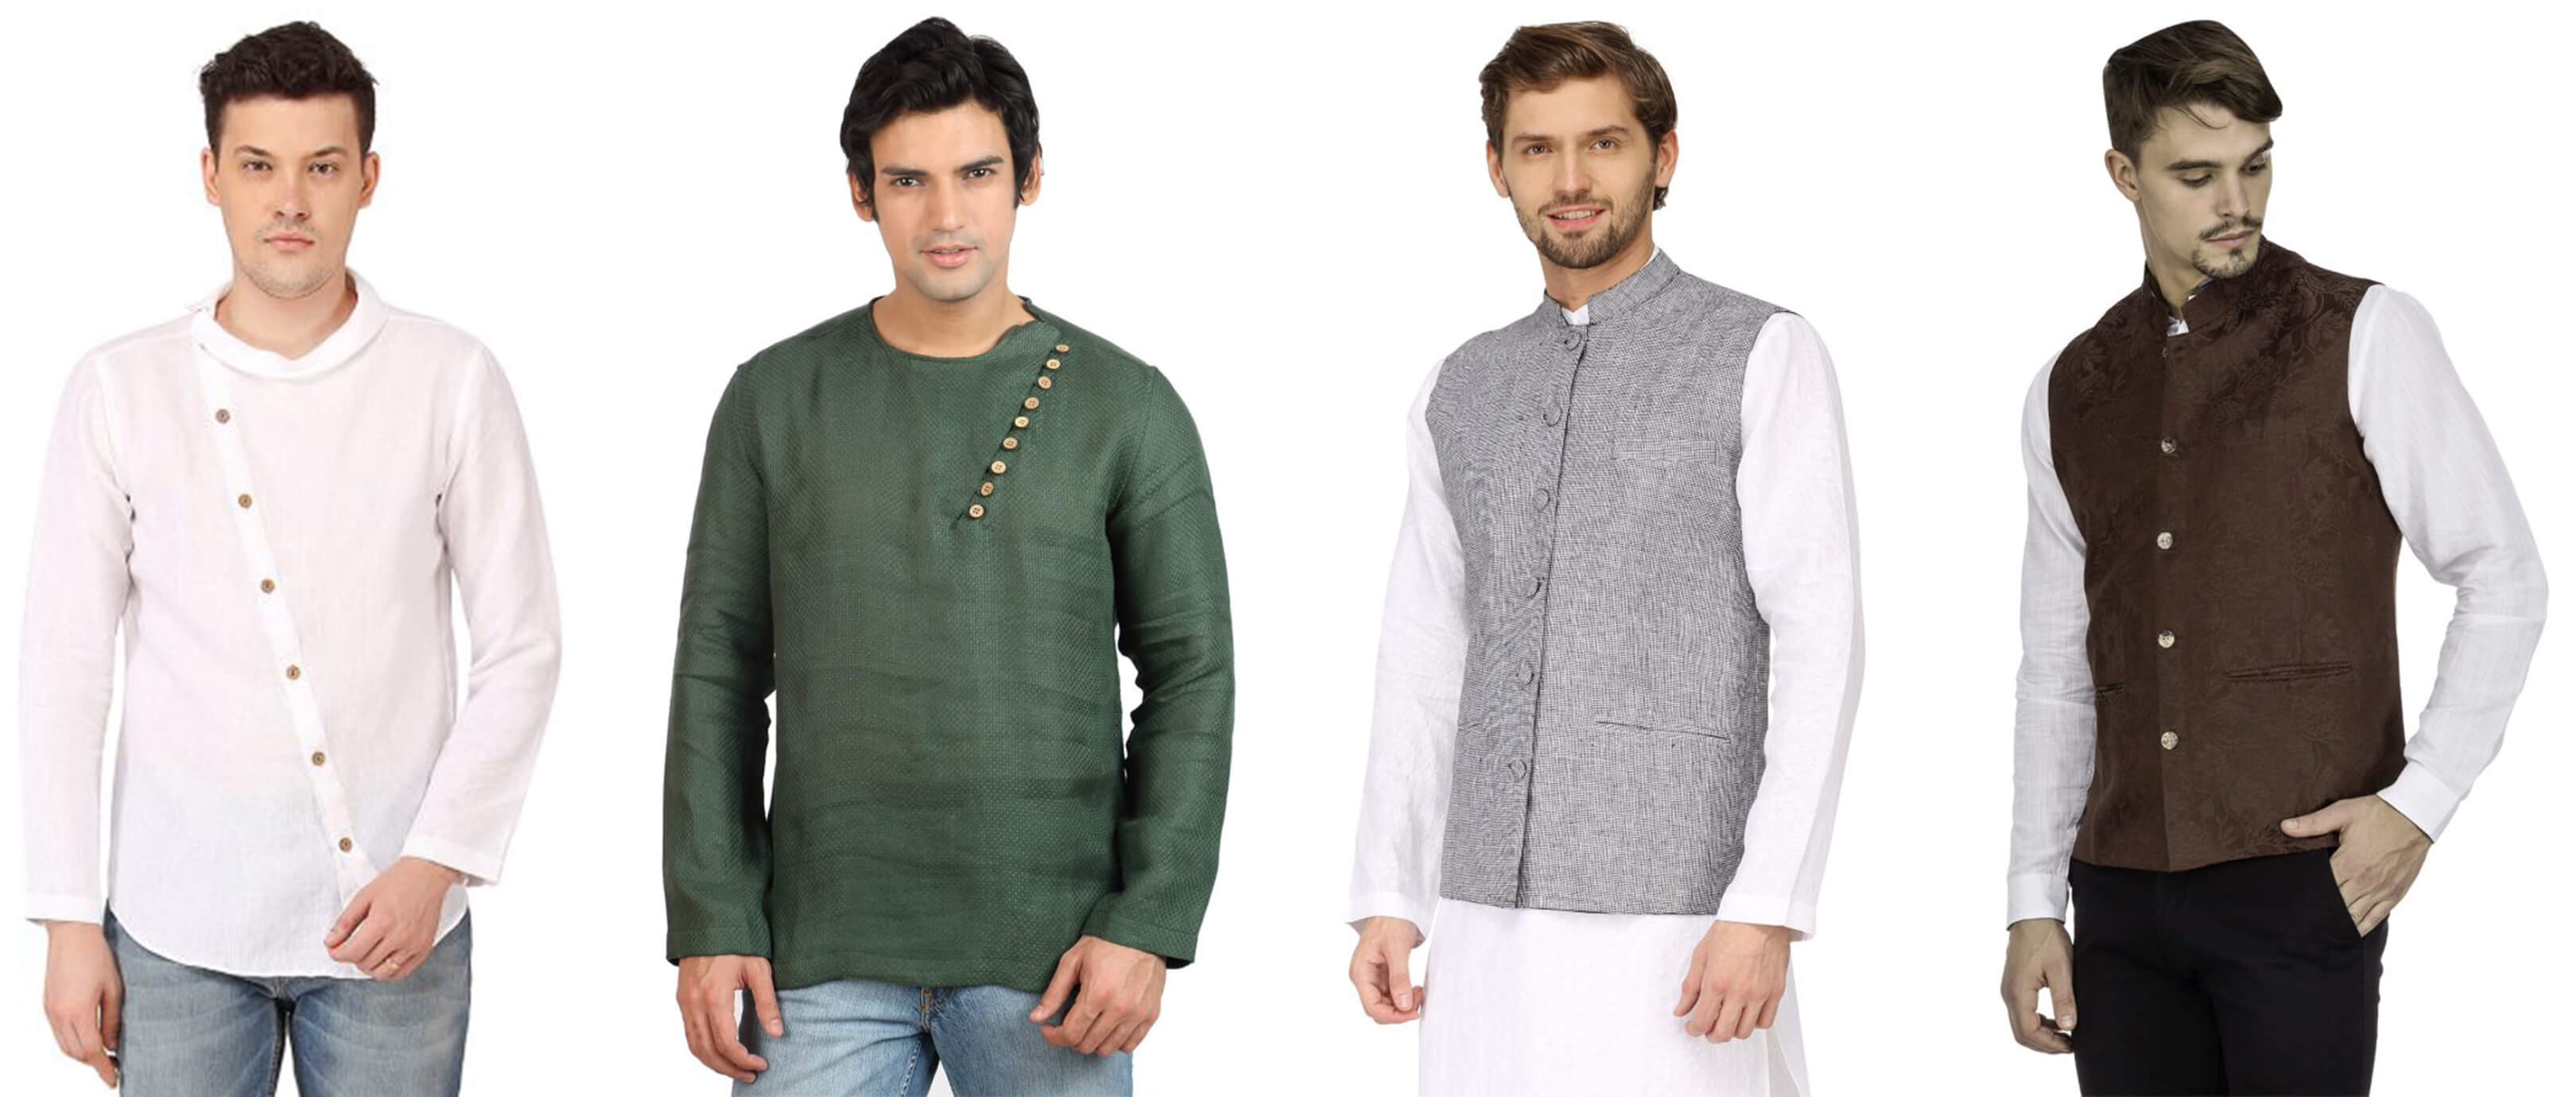 Eid_Style_Men_Featured_Image_Fashion